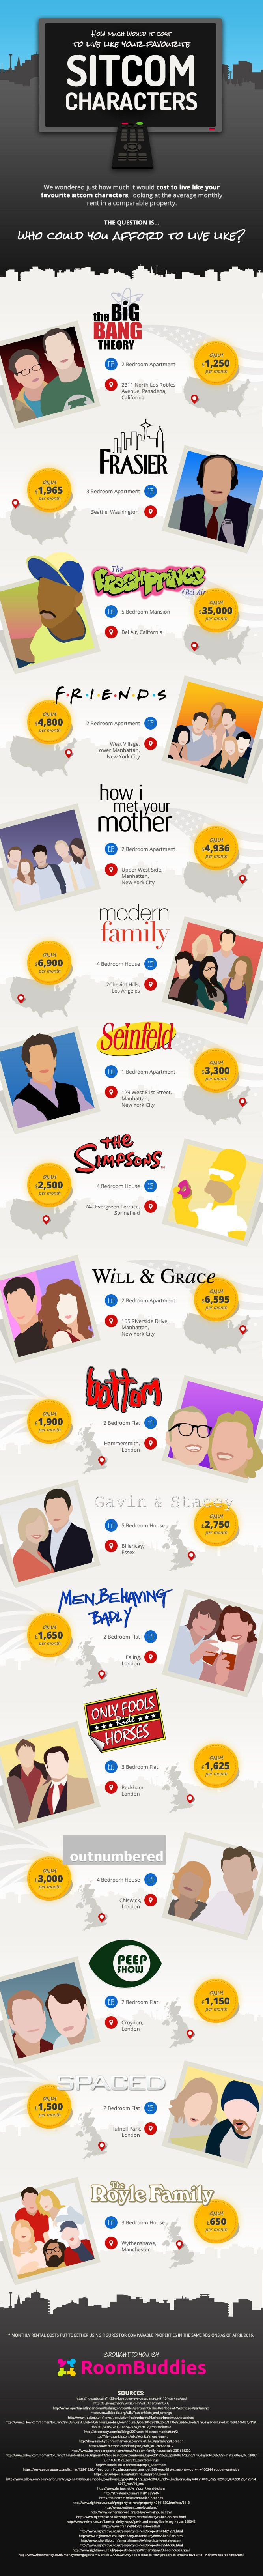 How Much Would It Cost To Live Like Your Favorite Sitcom Characters?